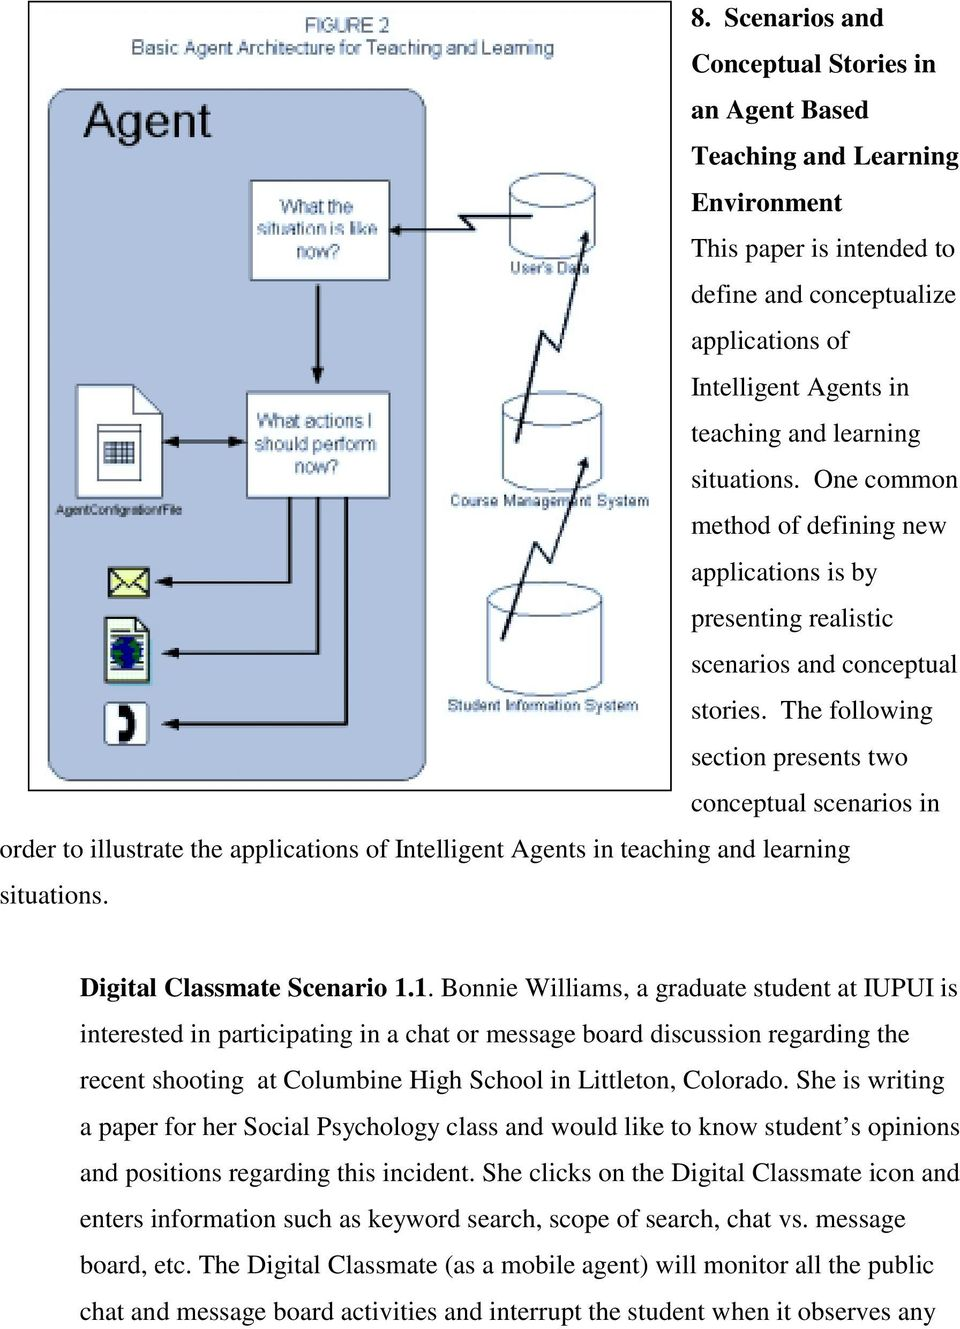 The following section presents two conceptual scenarios in order to illustrate the applications of Intelligent Agents in teaching and learning situations. Digital Classmate Scenario 1.